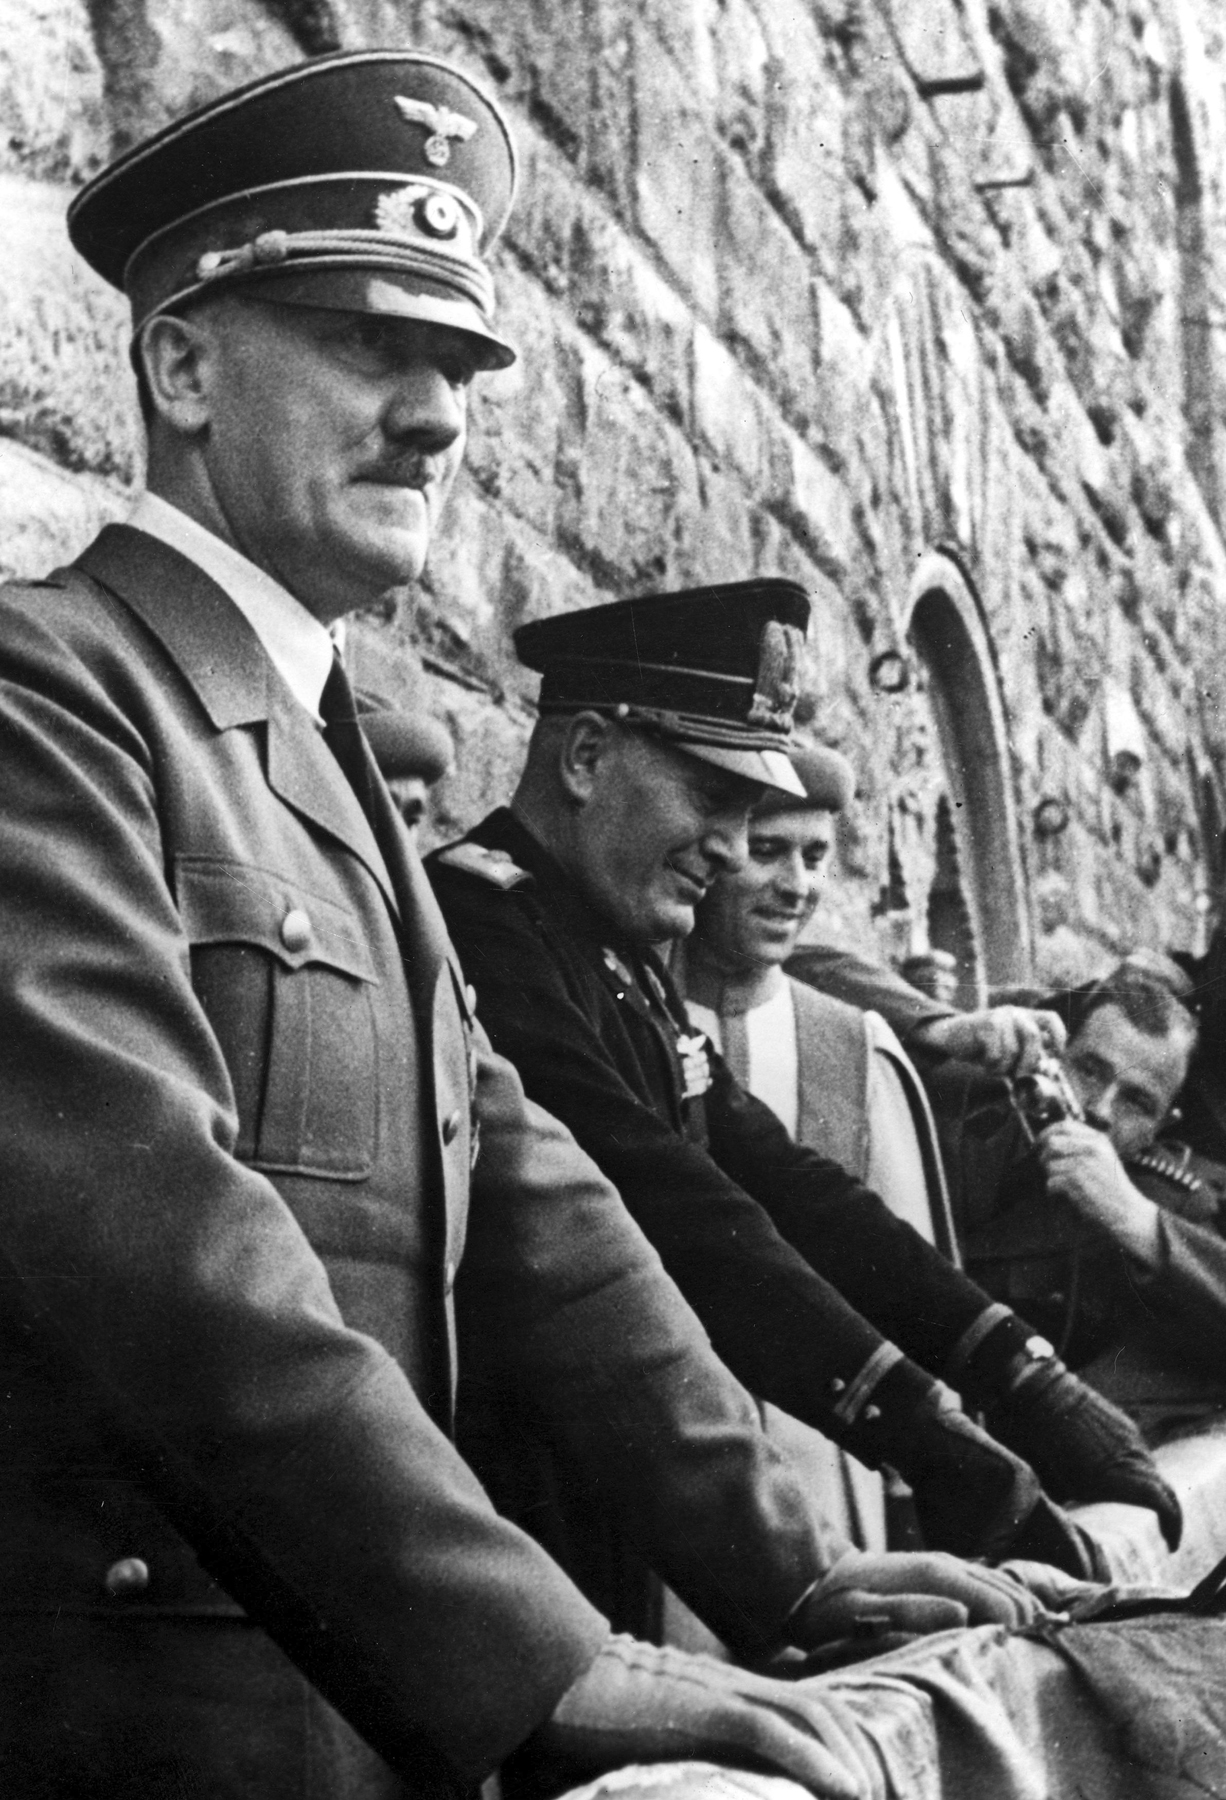 Adolf Hitler in Florenz with Mussolini on the balcony of the Palazzo Vecchio